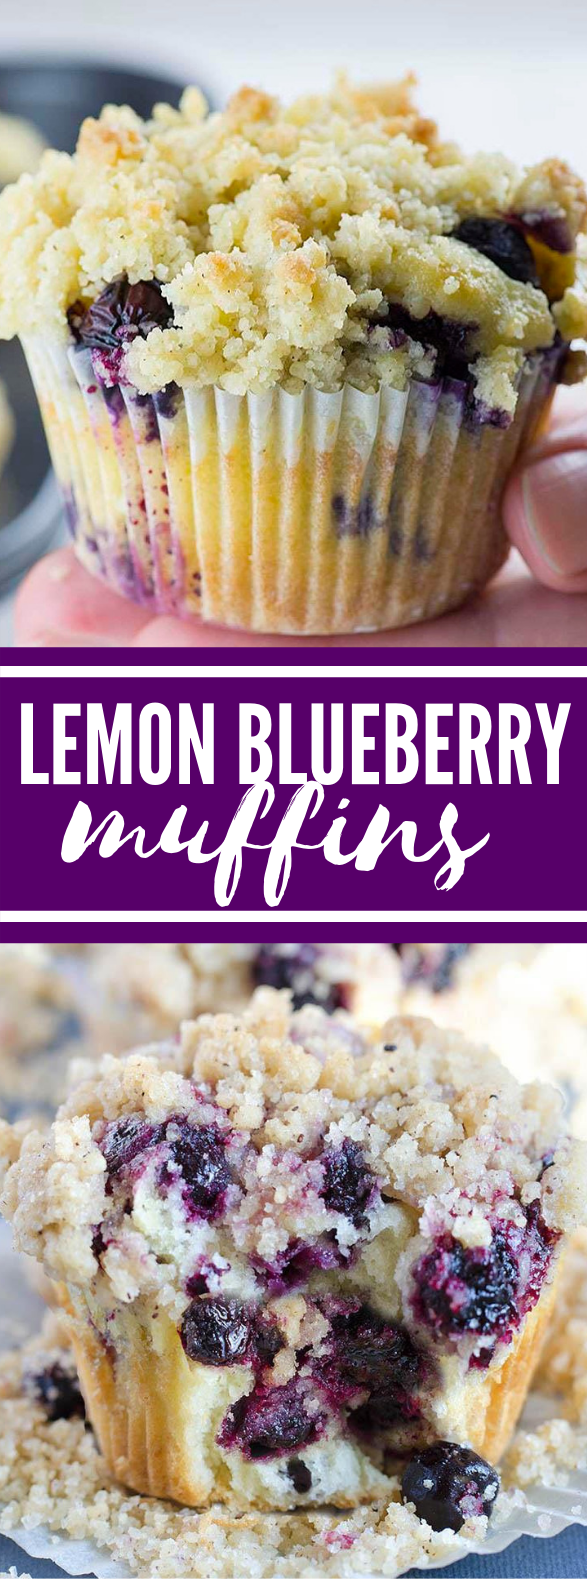 Lemon Blueberry Muffins #desserts #breakfast